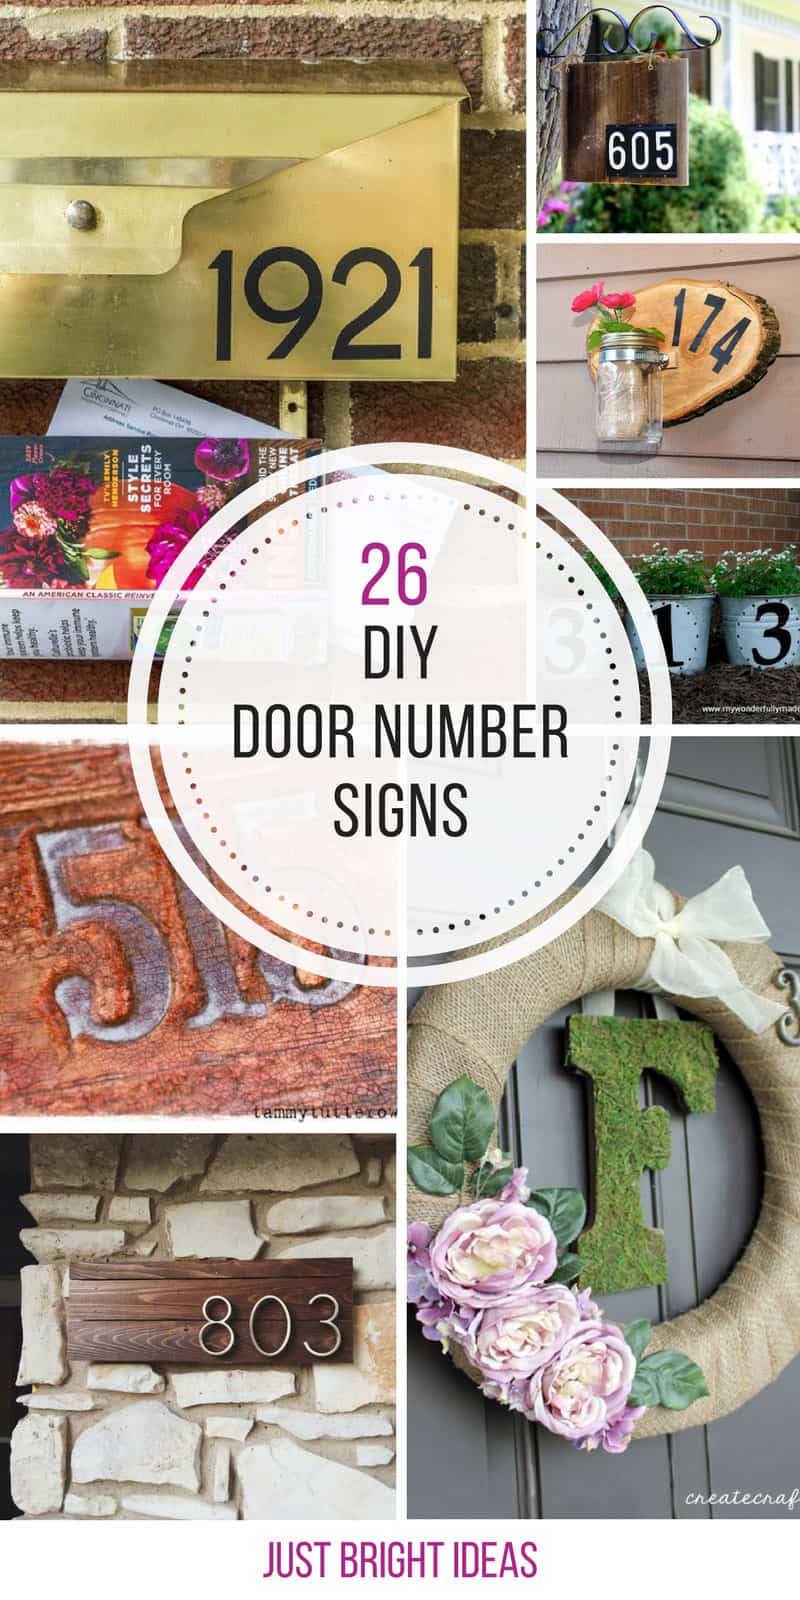 Loving these DIY house number signs!